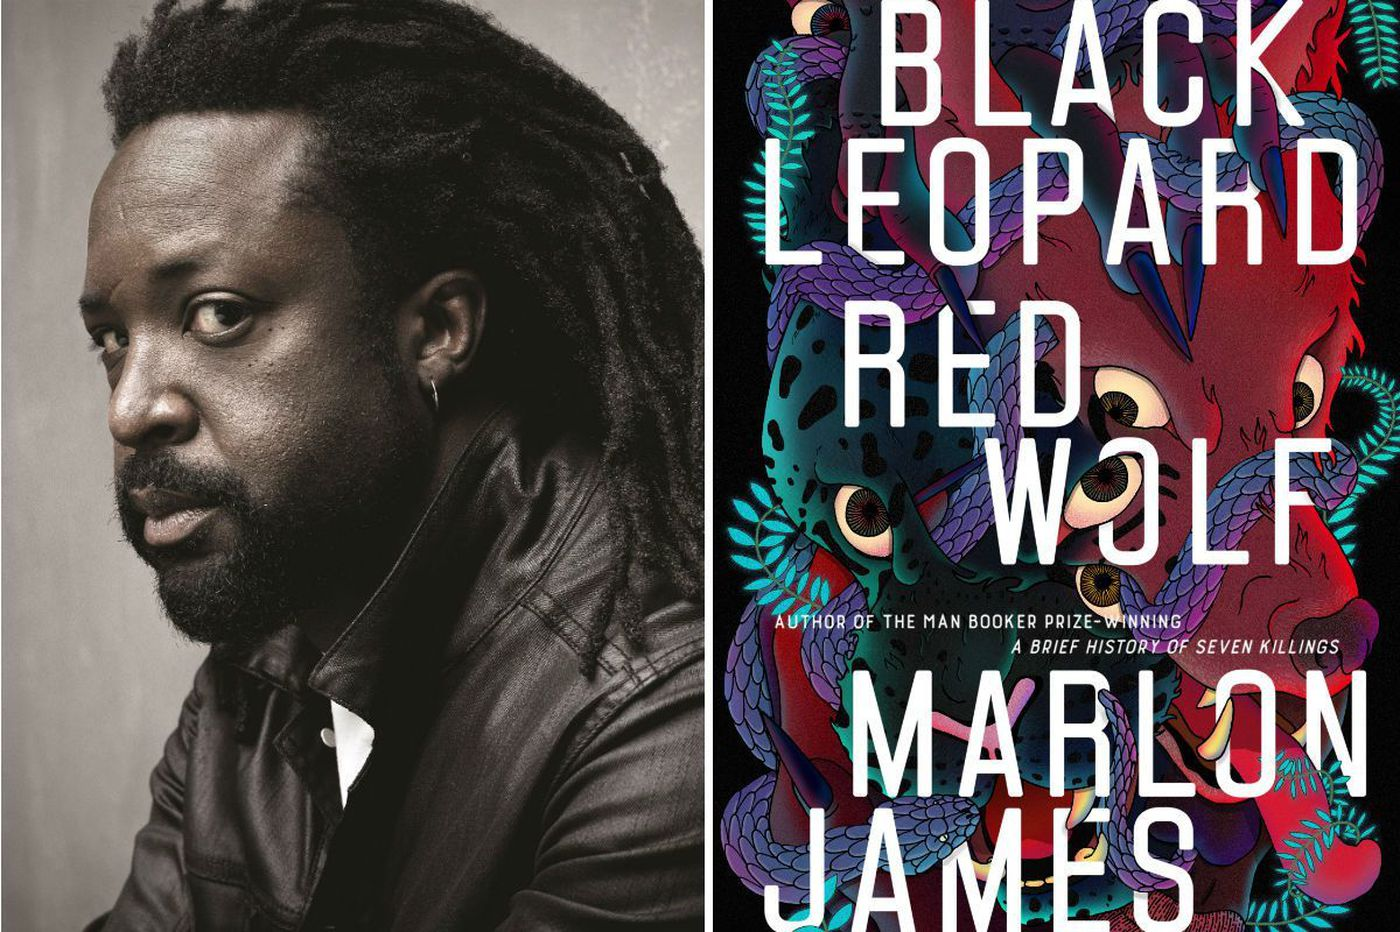 Marlon James' 'Black Leopard': The novel that rewrites the fantasy playbook